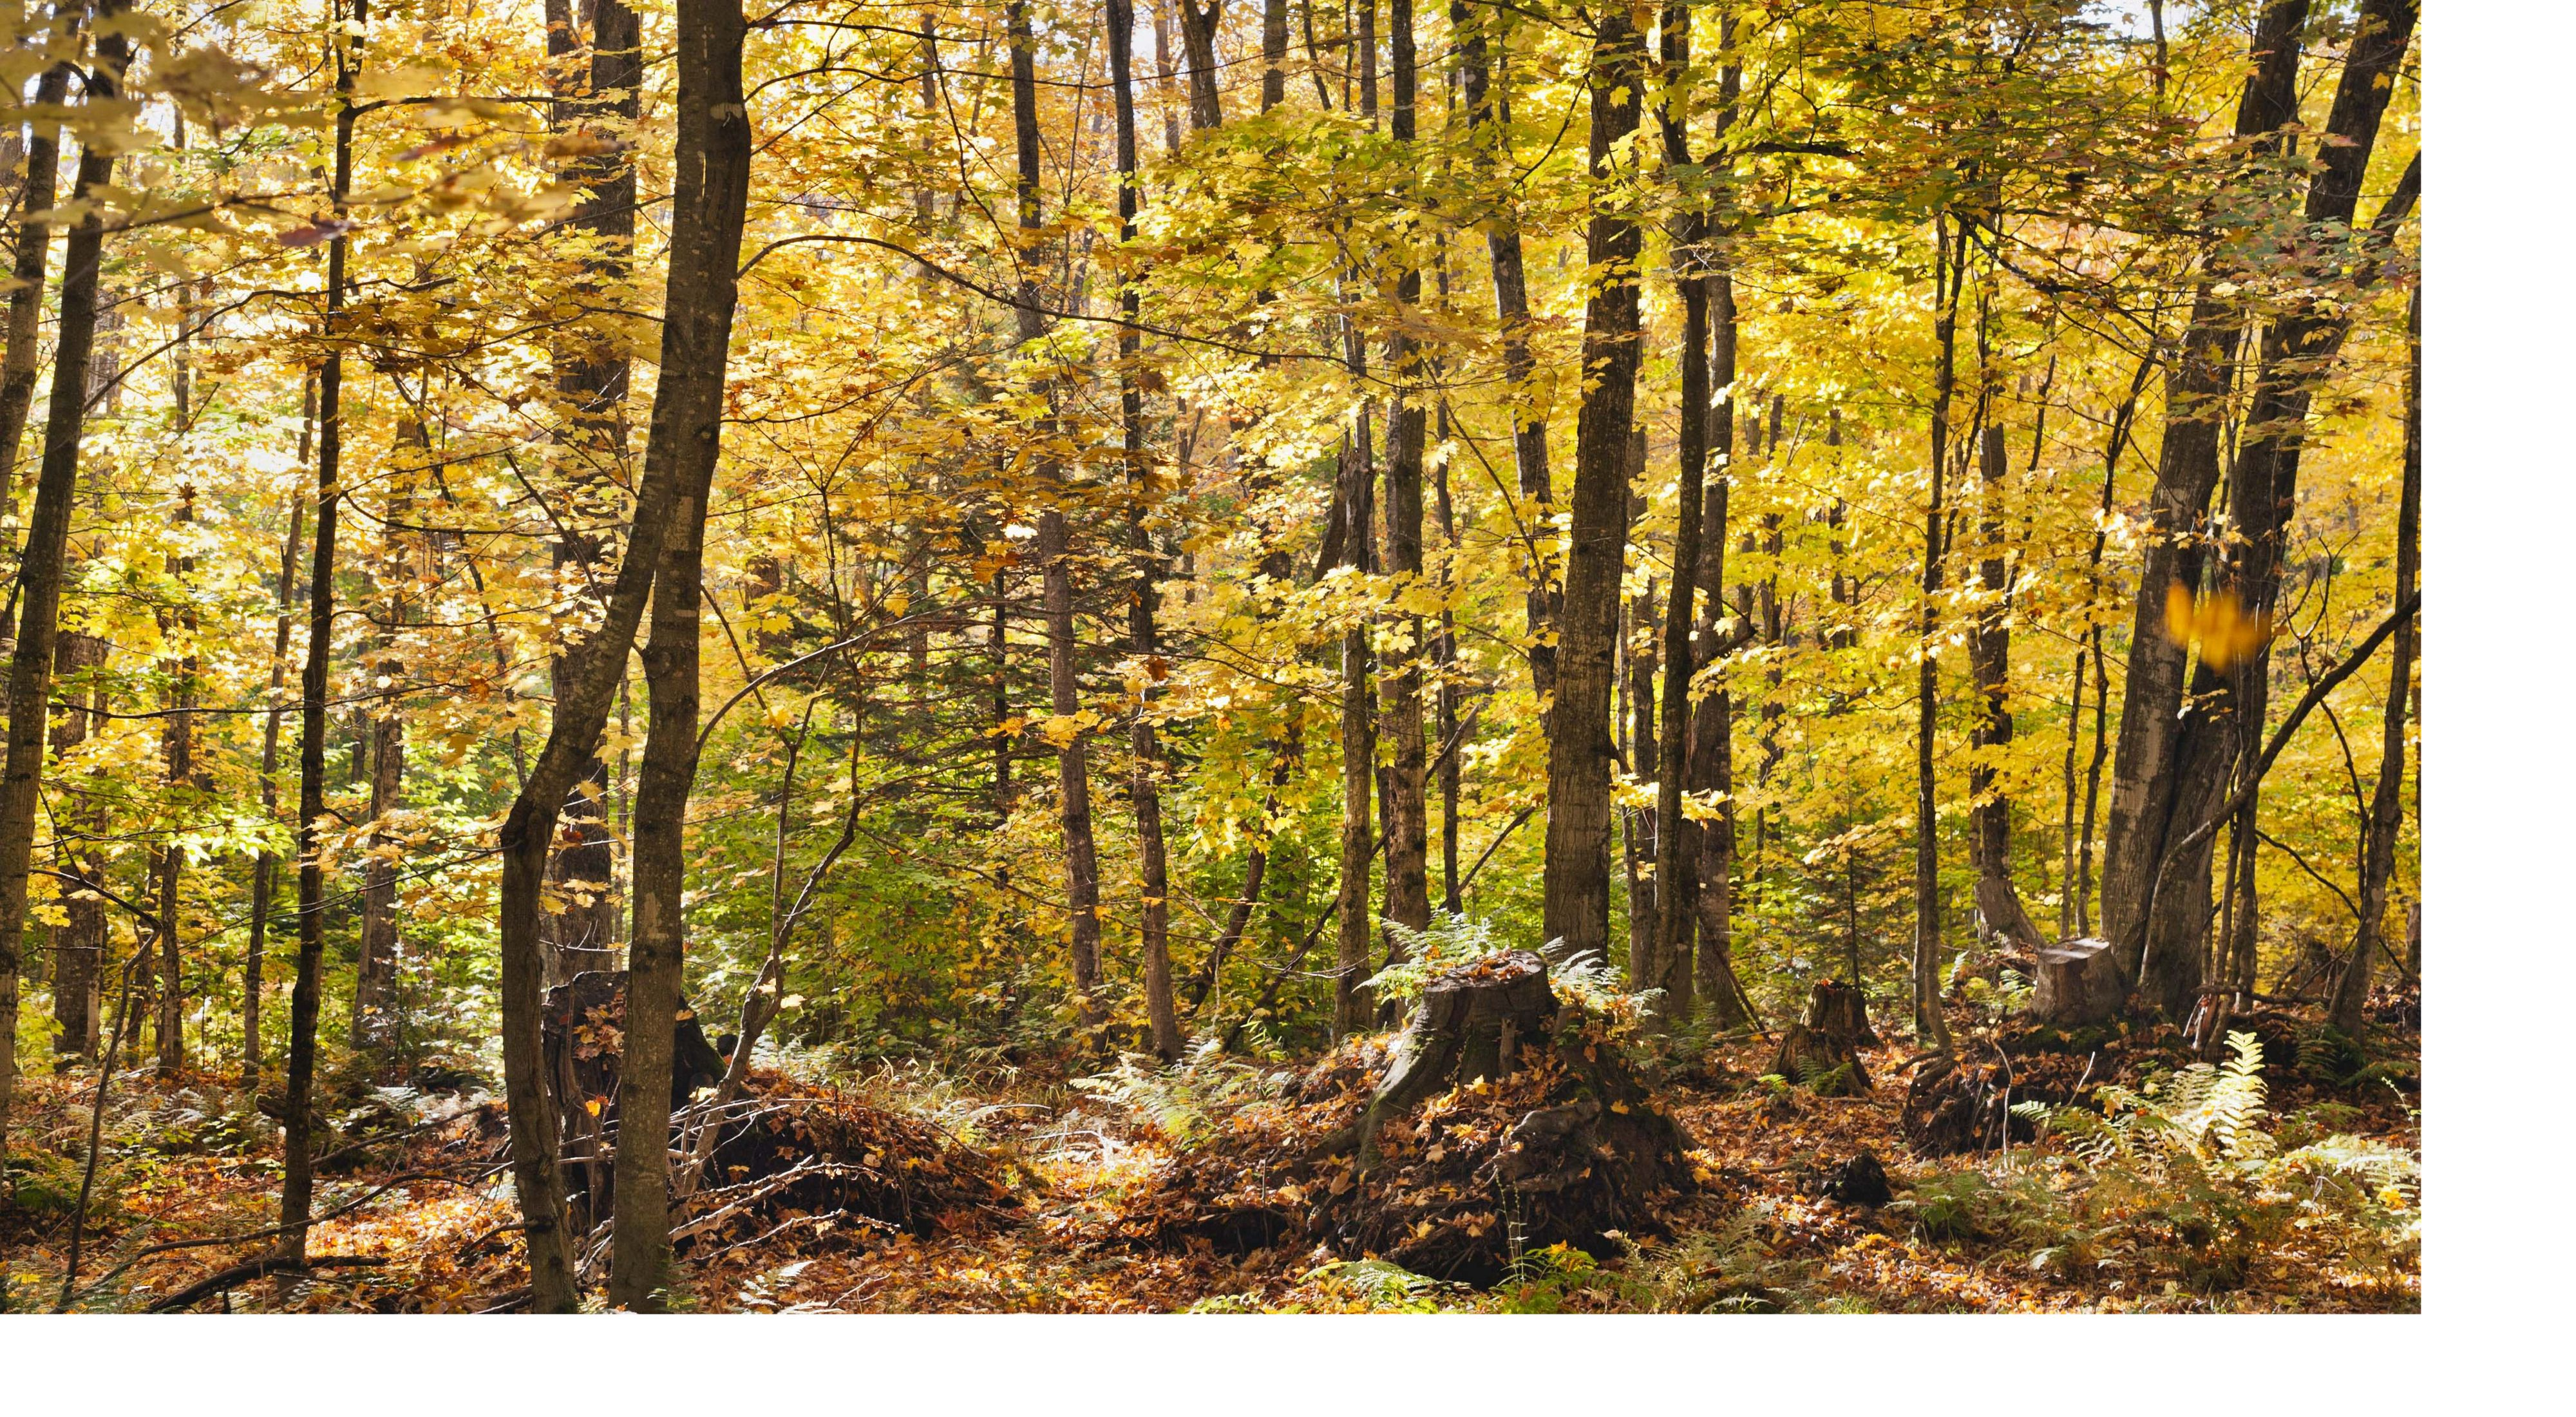 Photo of a Michigan hardwood forest in autumn colors.